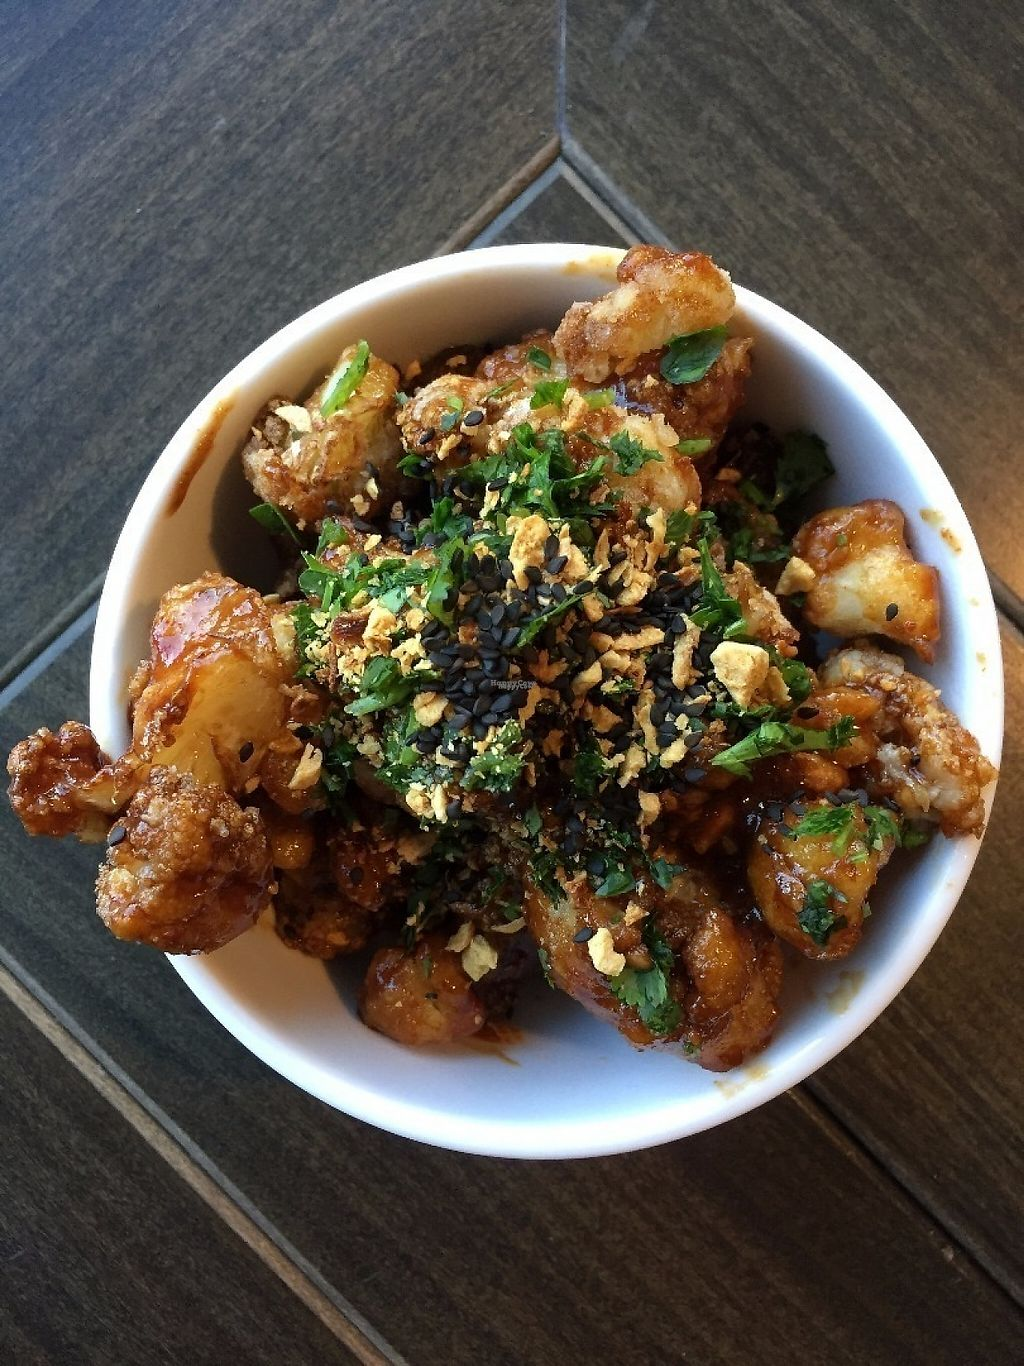 """Photo of Stall 11  by <a href=""""/members/profile/MeganGriffith"""">MeganGriffith</a> <br/>The korean bbq cauliflower from Stall 11 at R House in Remington, Baltimore <br/> January 16, 2017  - <a href='/contact/abuse/image/85625/212467'>Report</a>"""